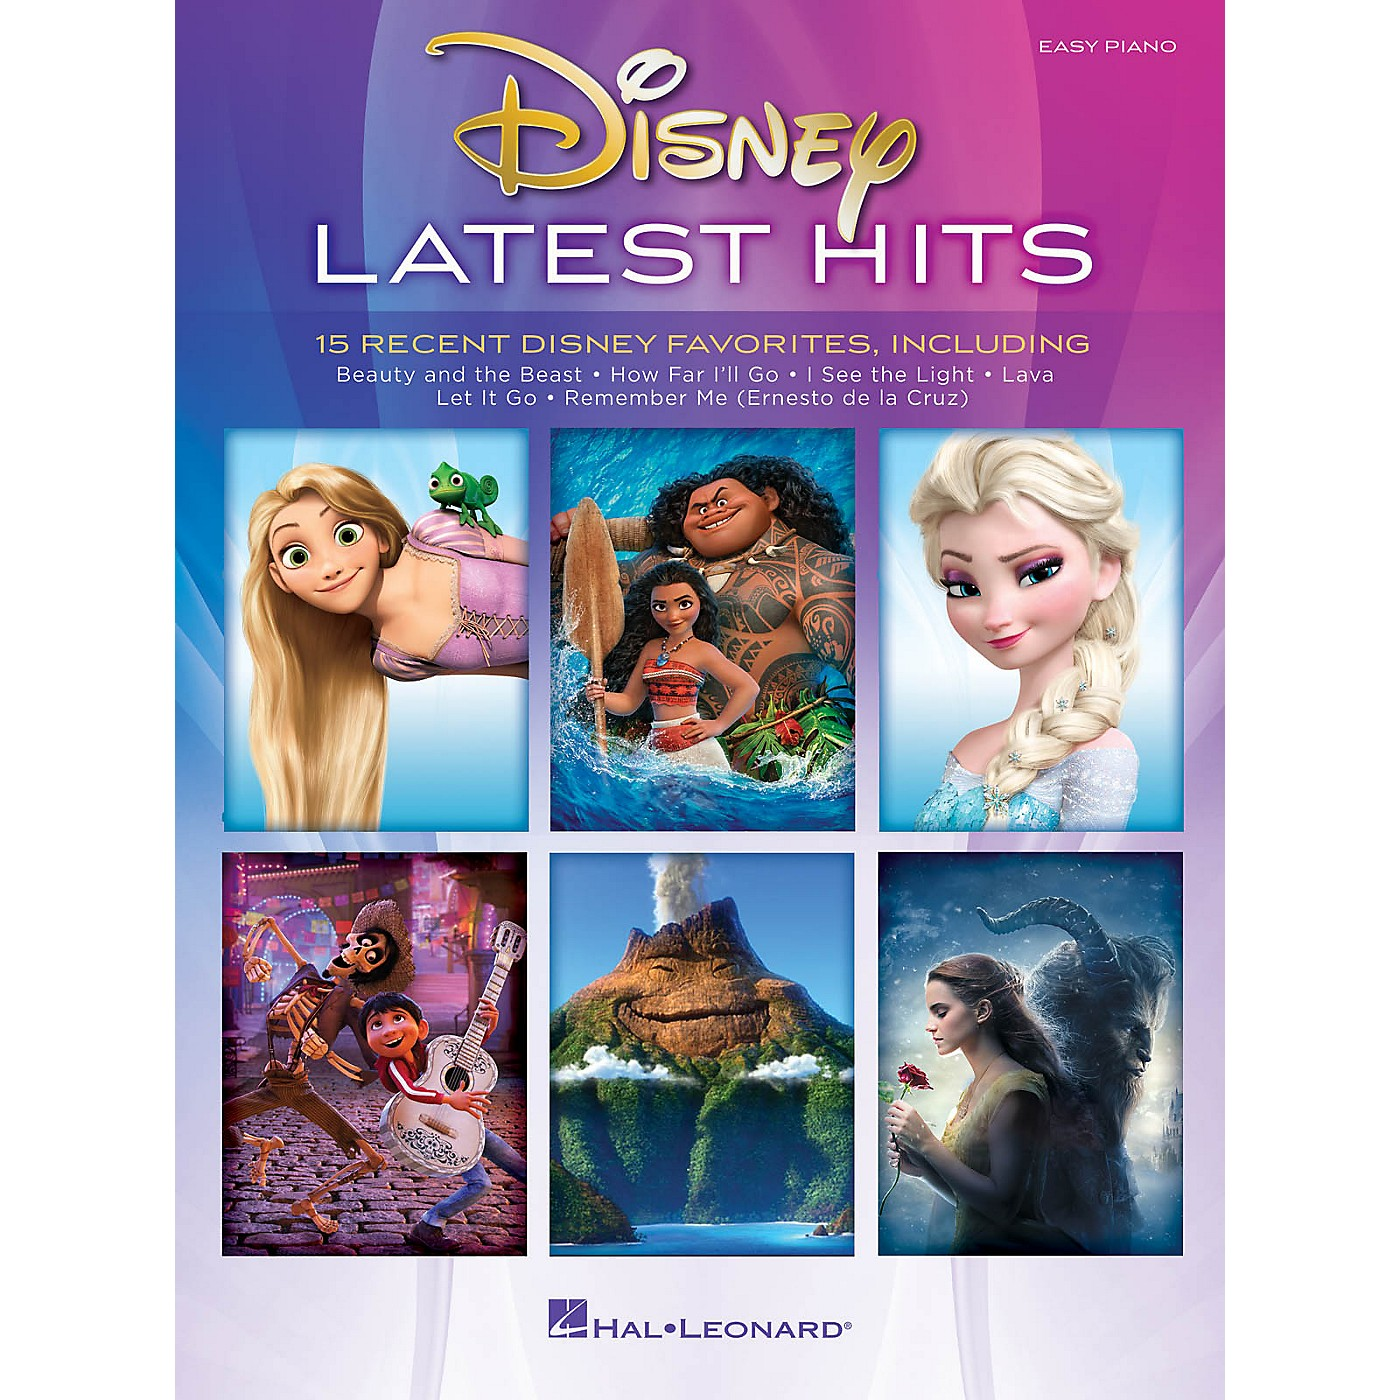 Hal Leonard Disney Latest Hits (15 Recent Disney Favorites) Easy Piano Songbook thumbnail